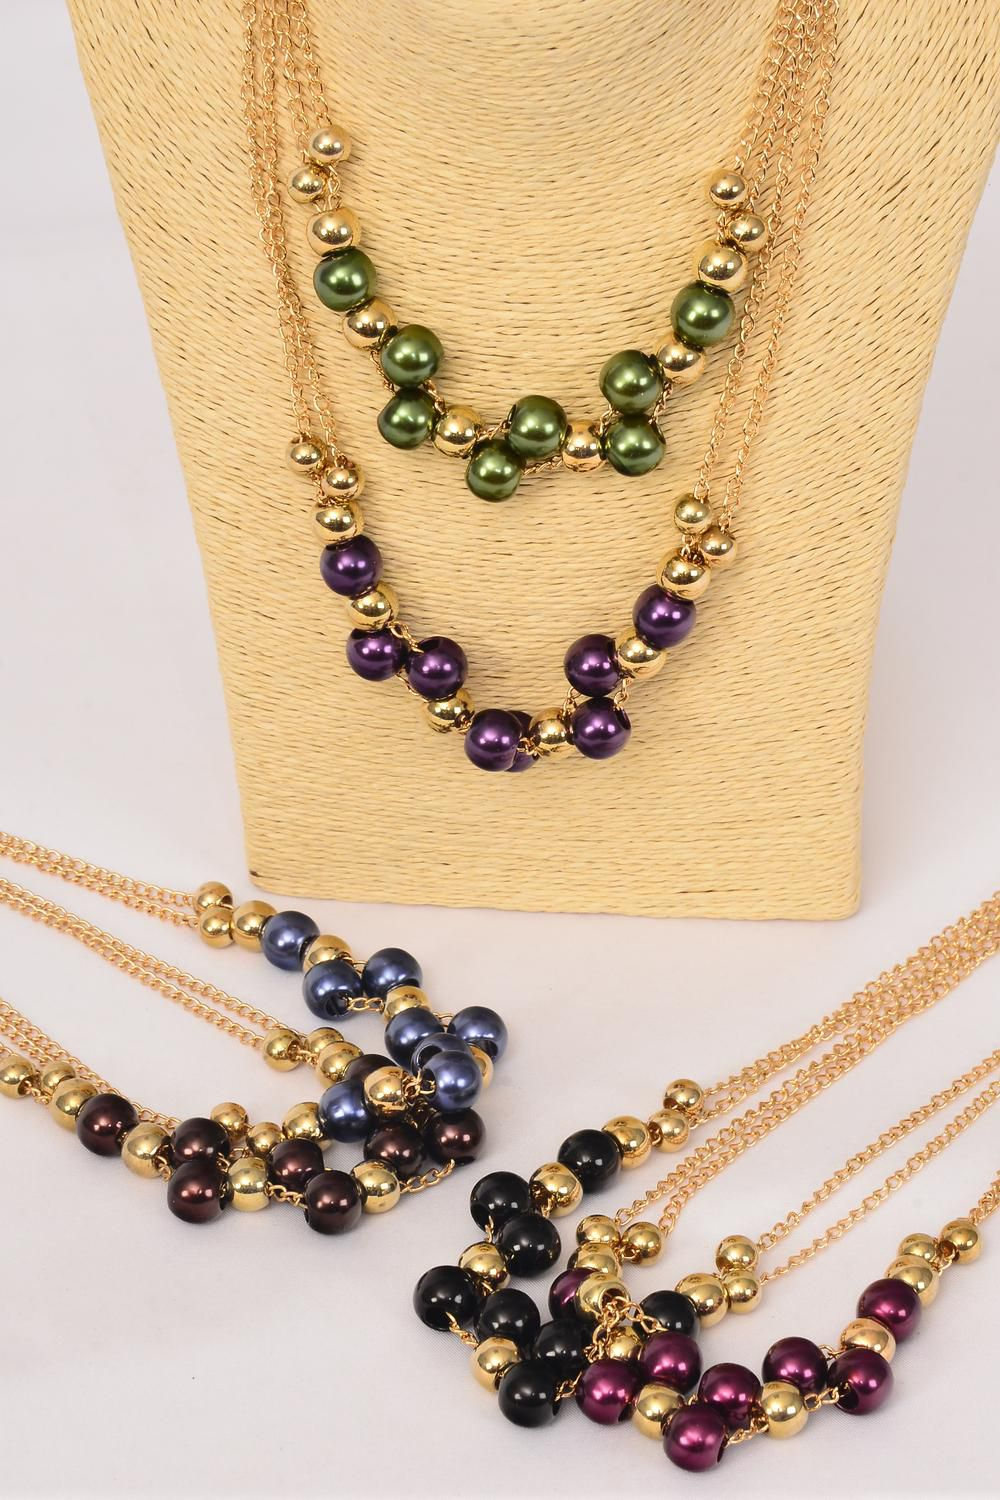 Necklace Sets Gold Chain 14 mm Pearl Beads/DZ **Dark Multi** Size ...